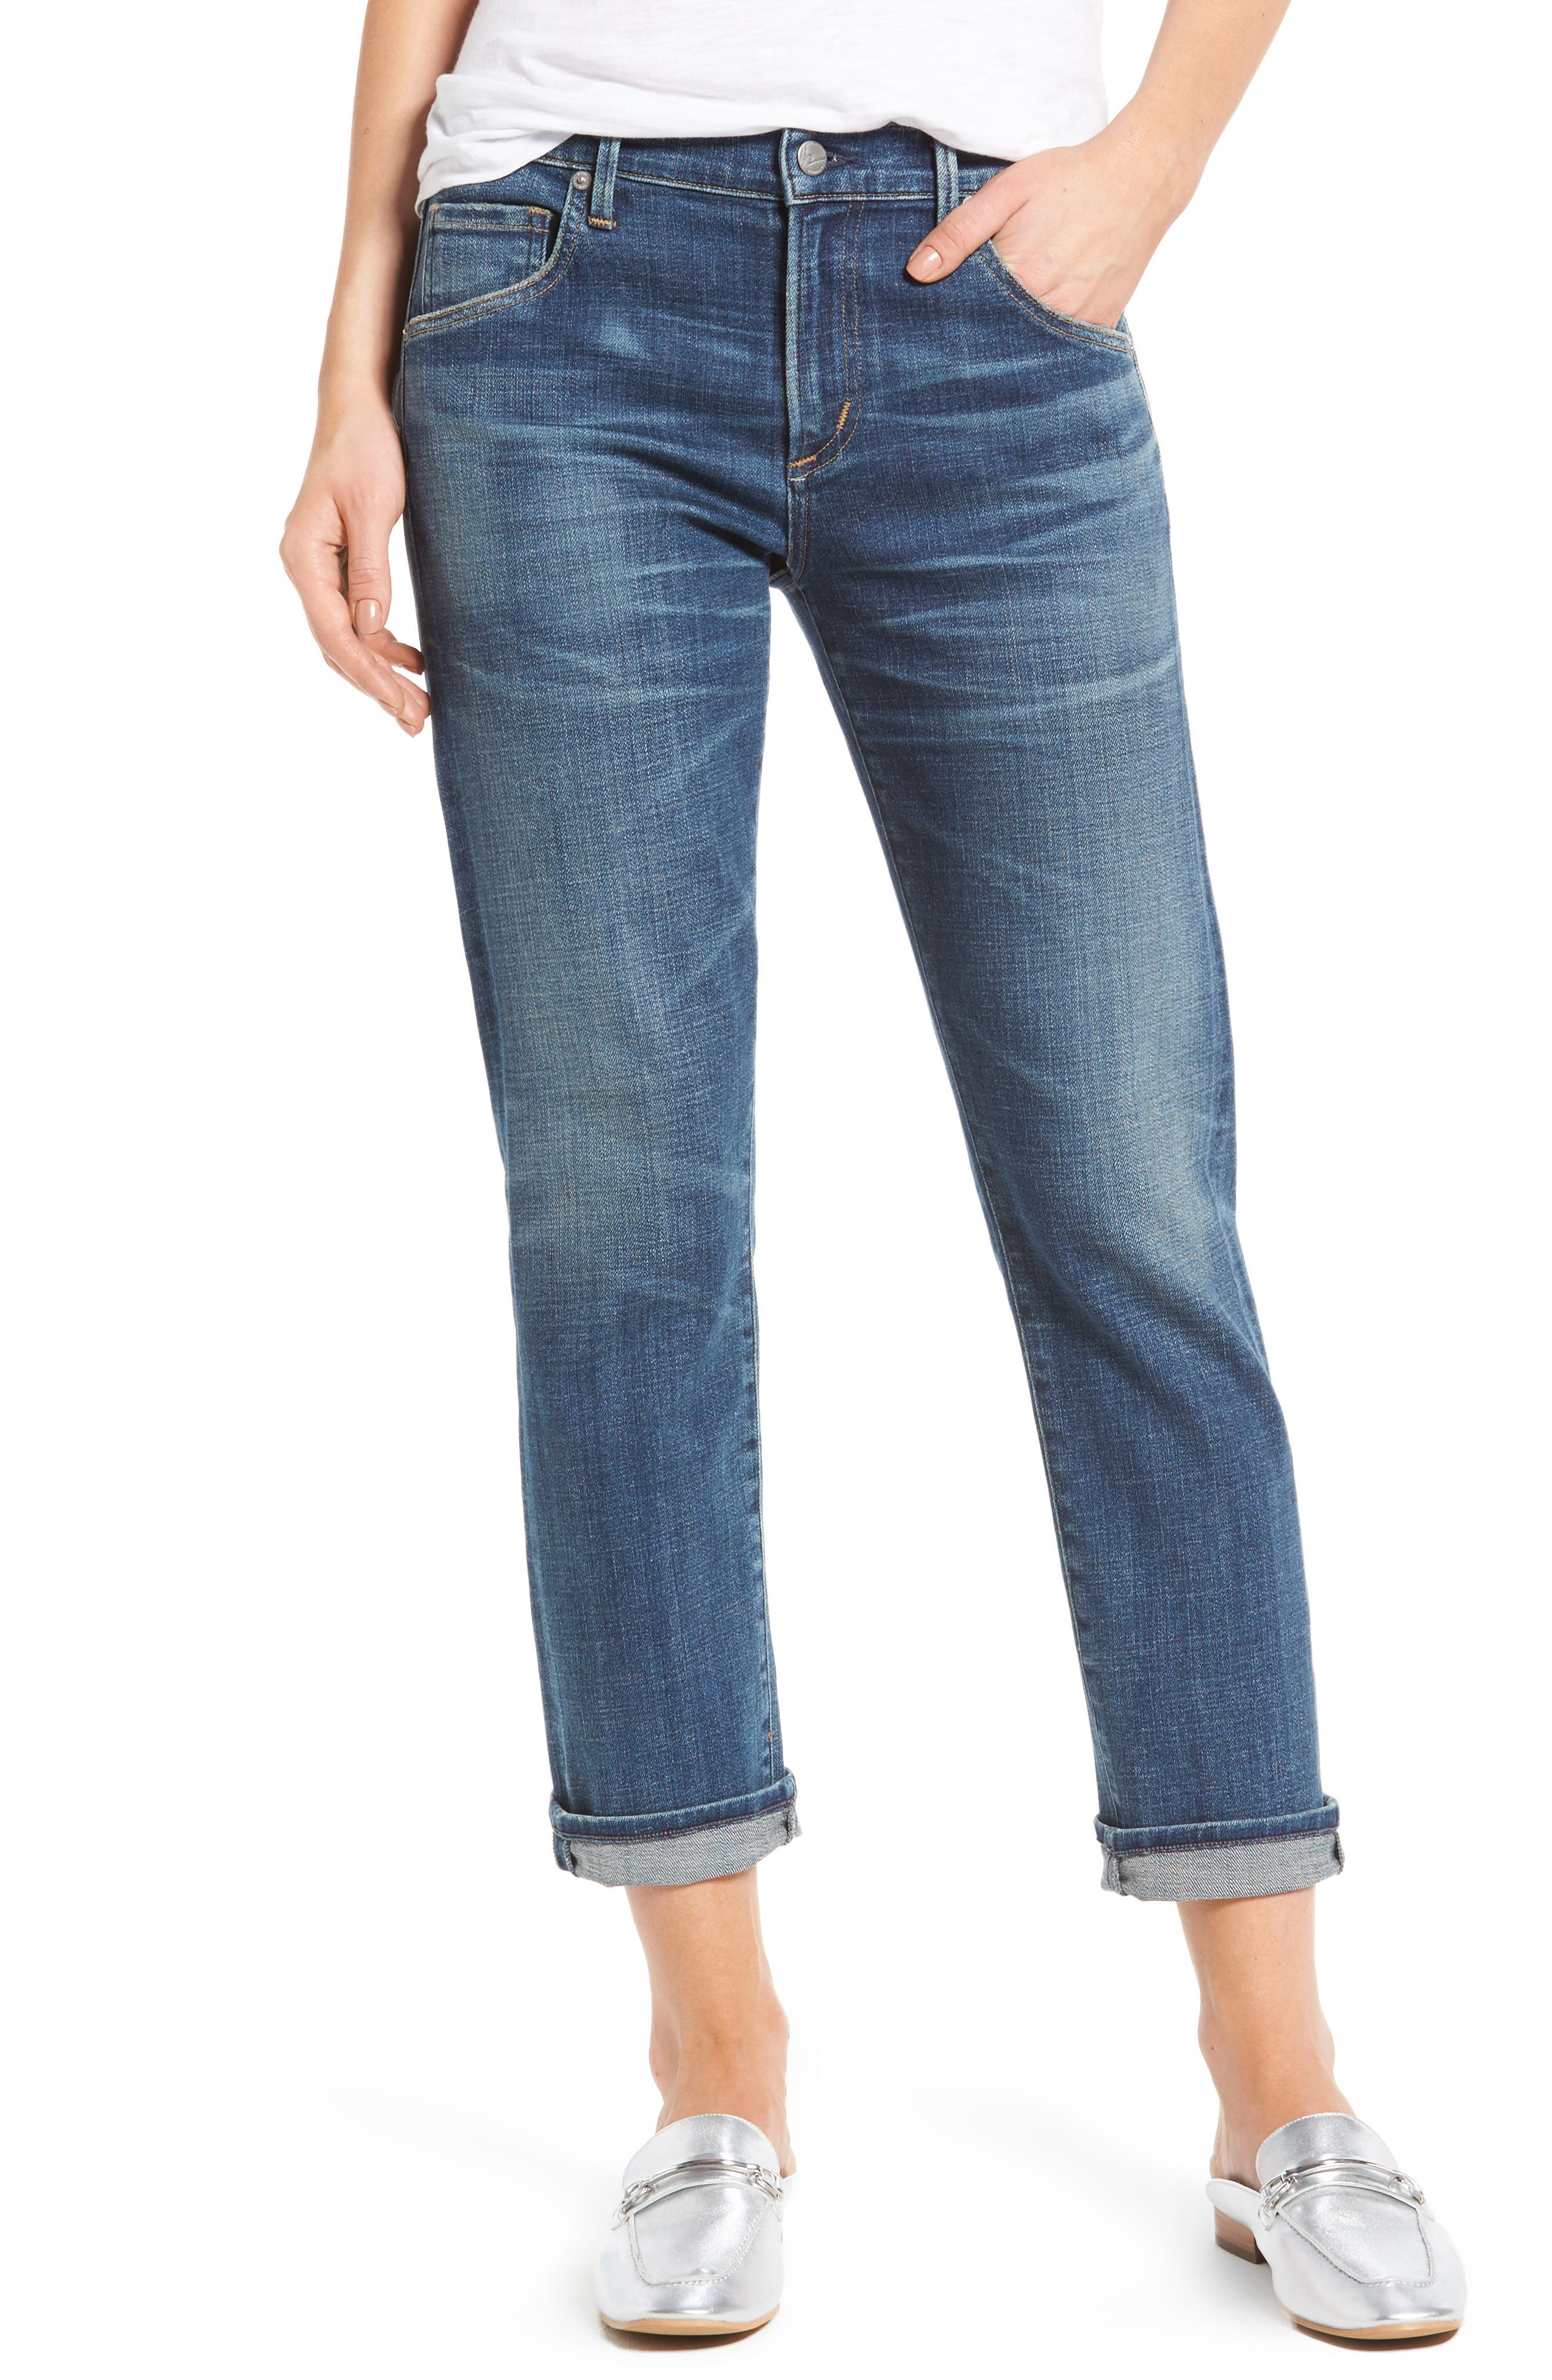 Main Image - Citizens of Humanity Emerson Slim Boyfriend Jeans (Crusade)